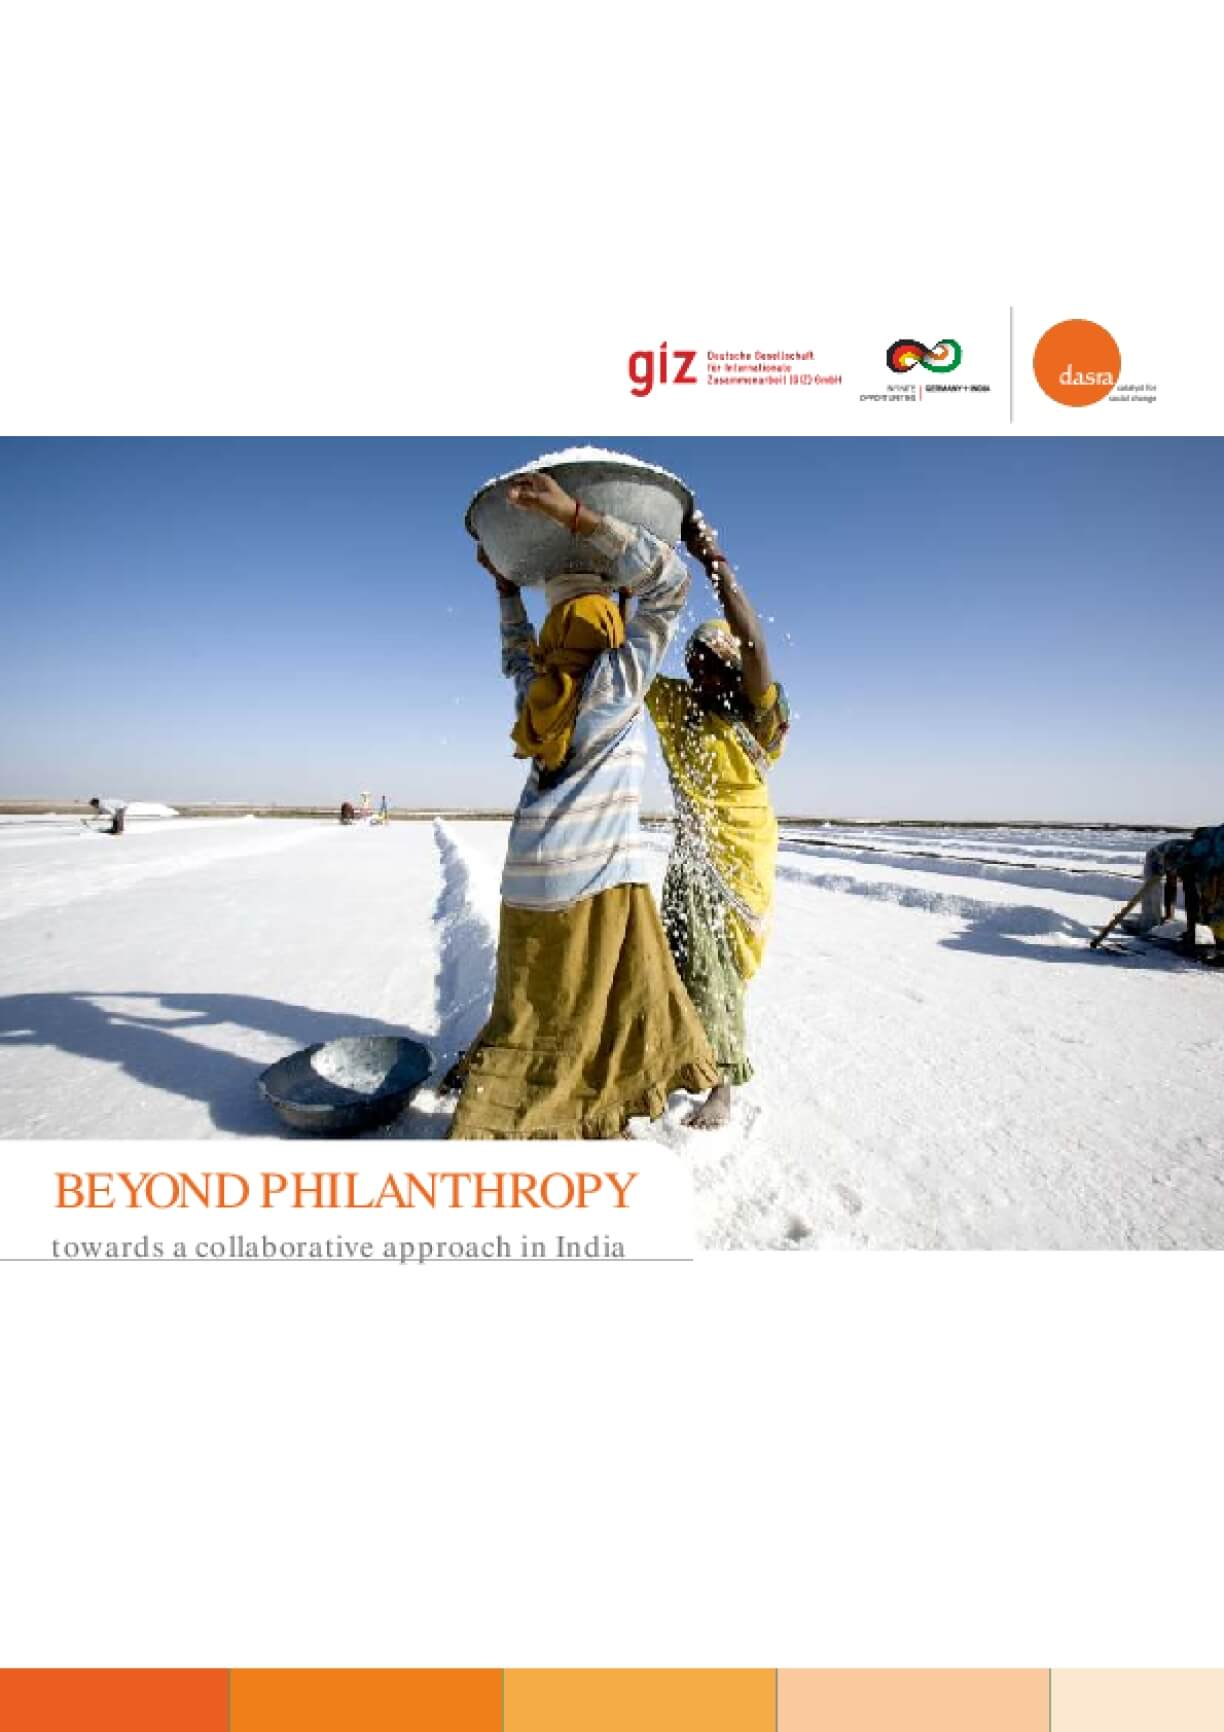 Beyond Philanthropy: Towards a Collaborative Approach in India